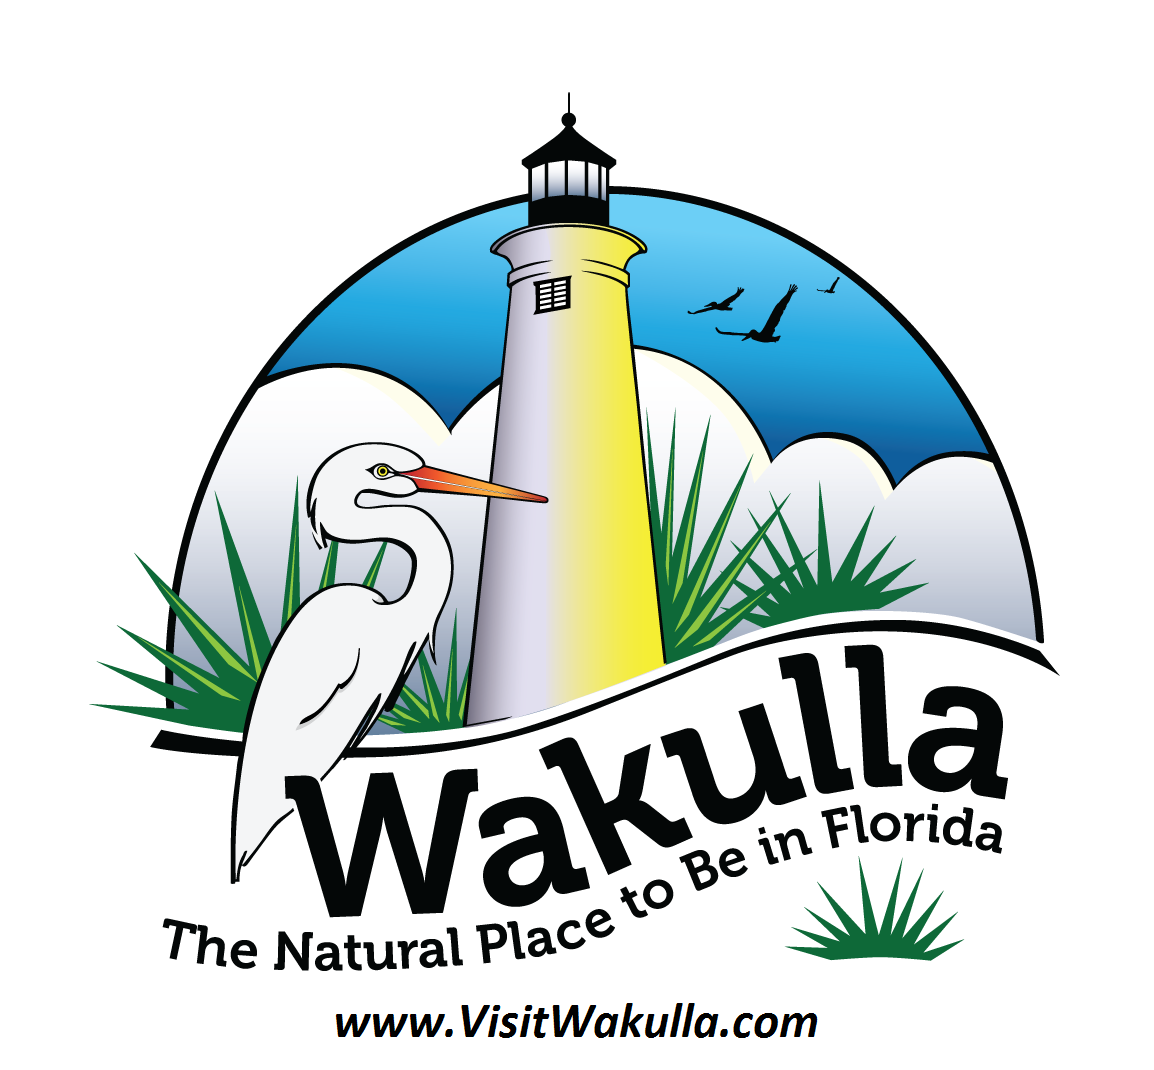 Wakulla, Florida - The Natural Place to Be